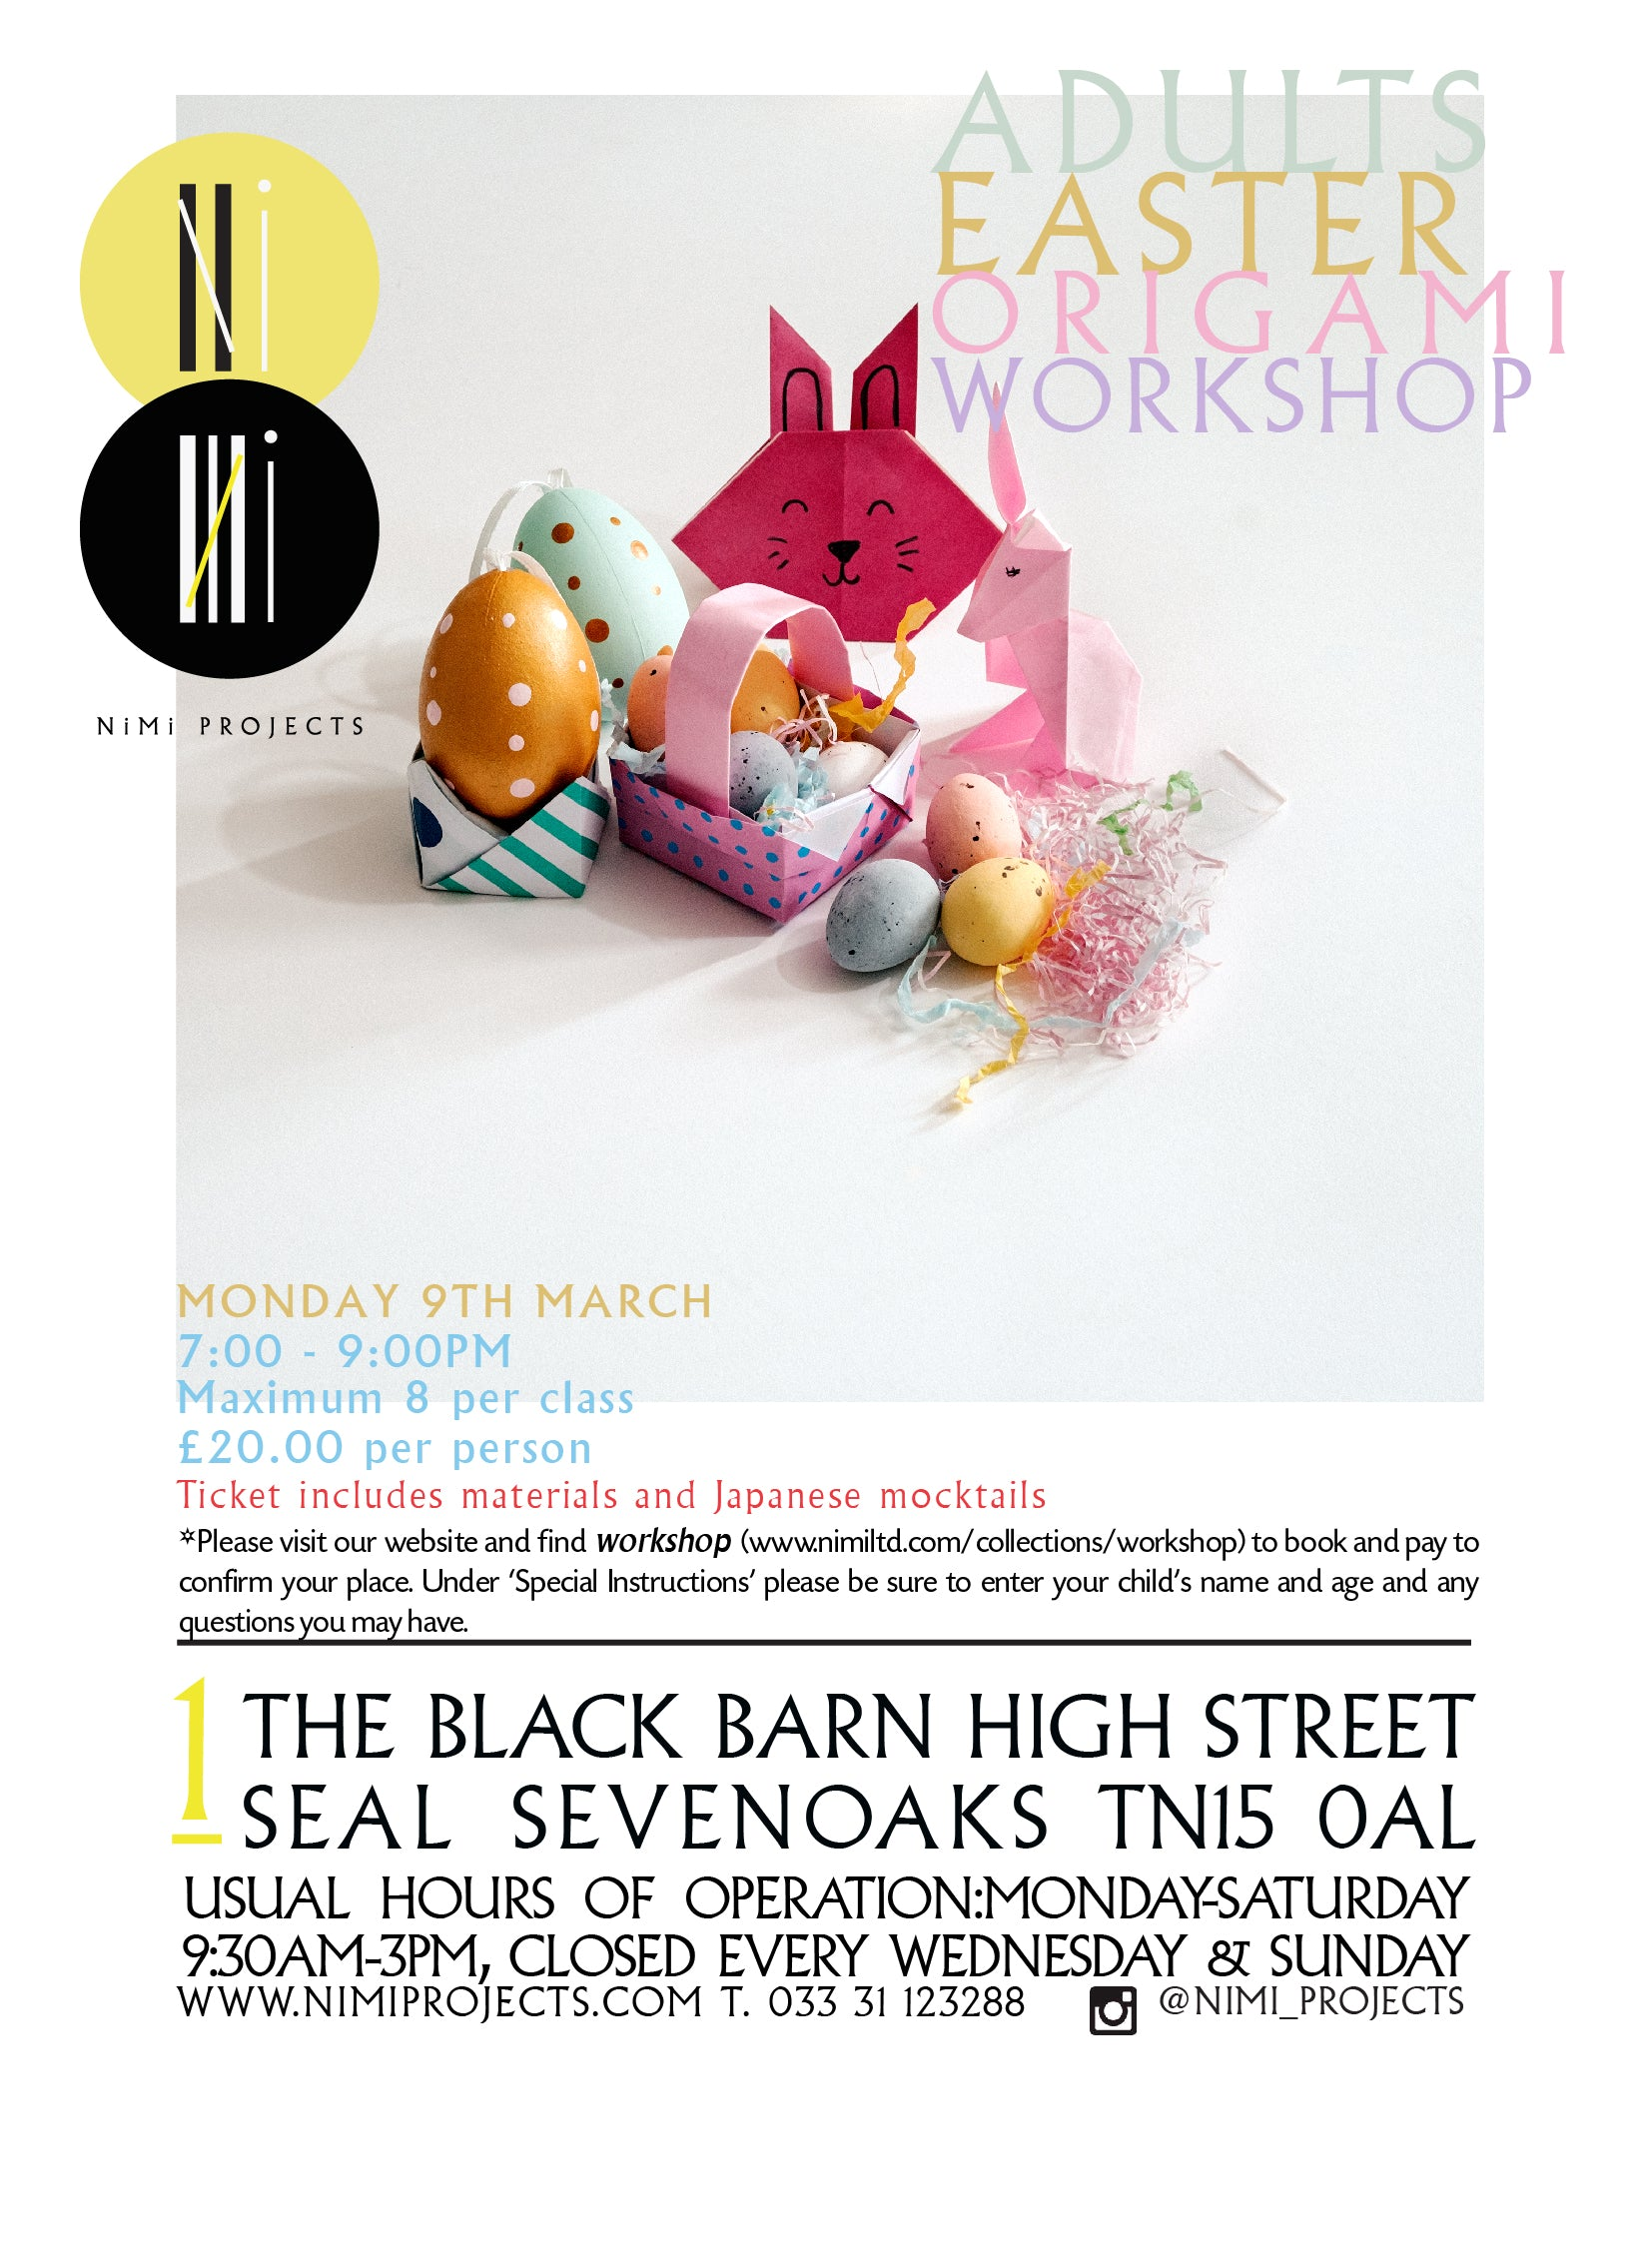 ADULTS EASTER ORIGAMI WORKSHOP NIMI PROJECTS SEVENOAKS SEAL